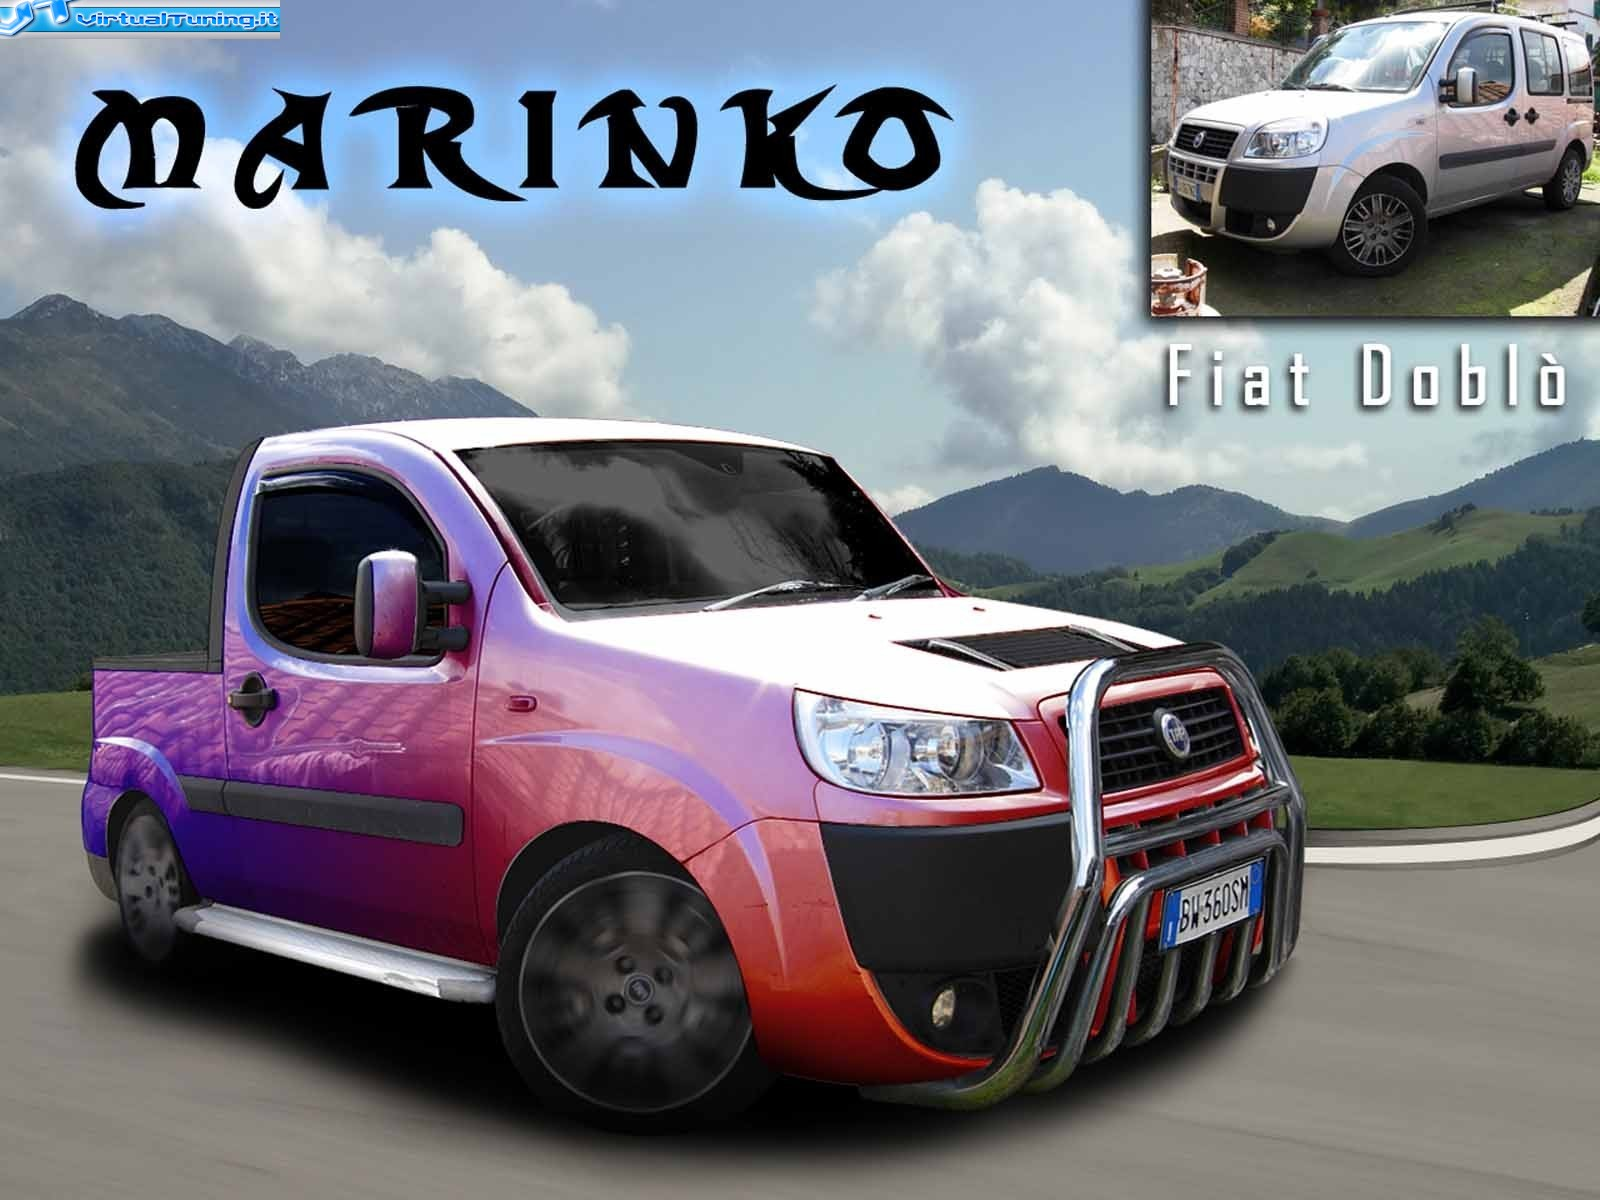 FIAT Doblò by marinko ..:: VirtualTuning.IT